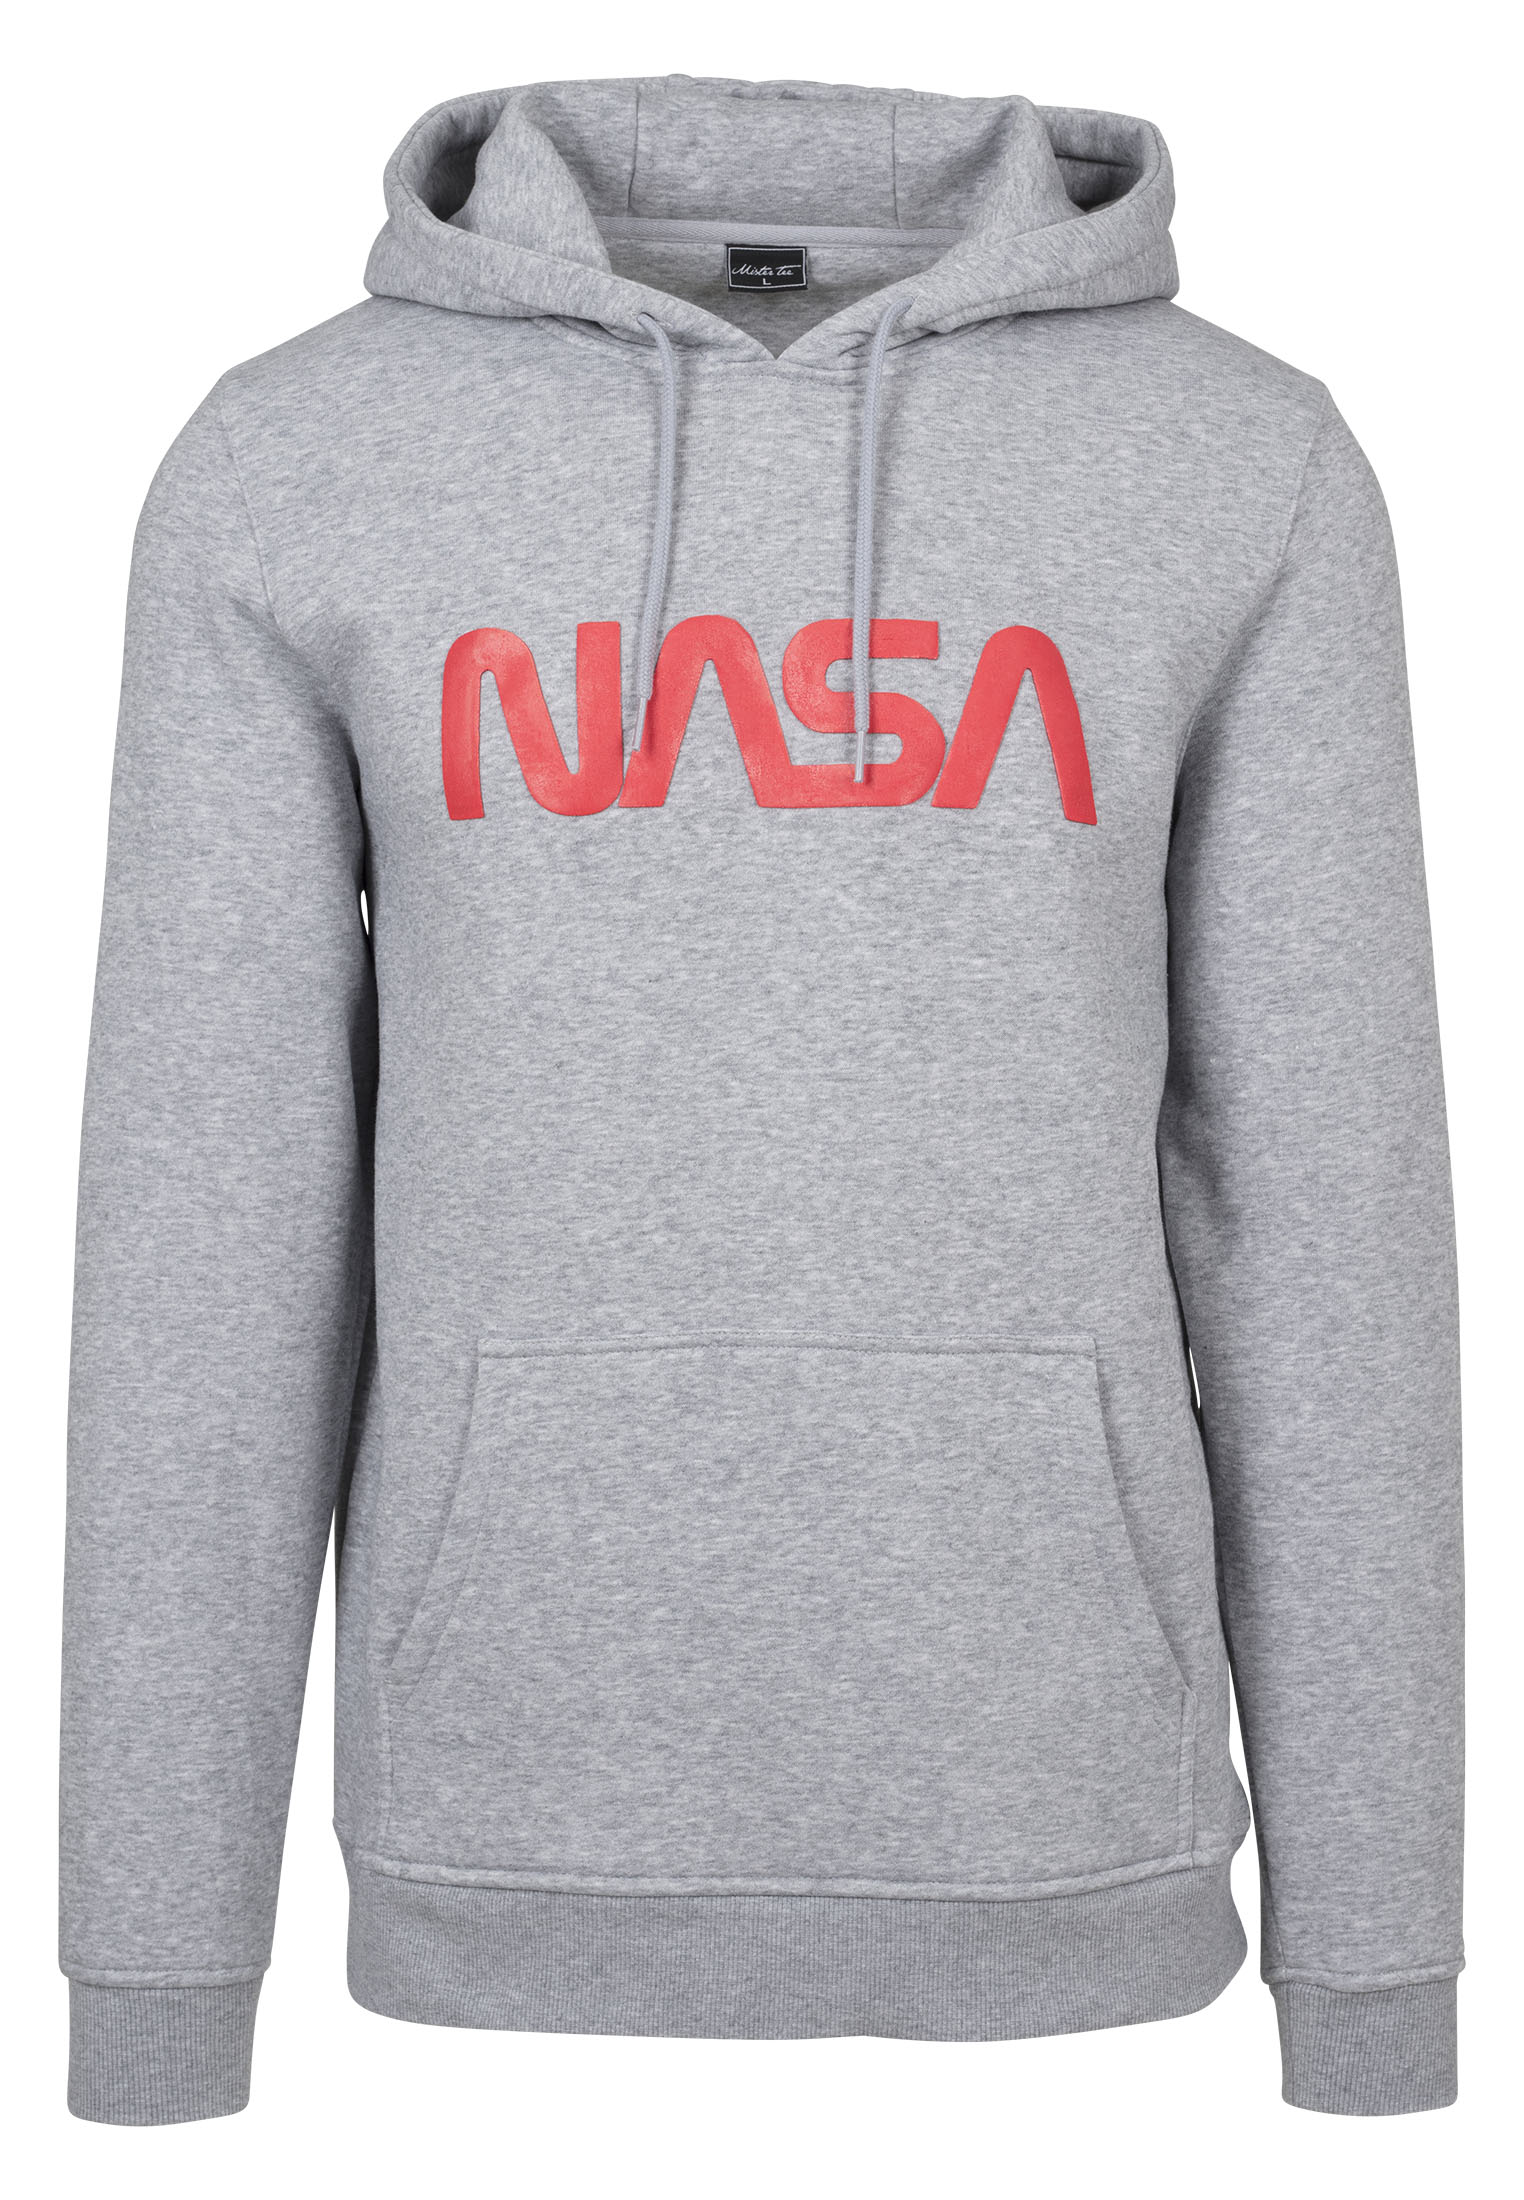 streetwear fashion online shop mister tee nasa worm. Black Bedroom Furniture Sets. Home Design Ideas